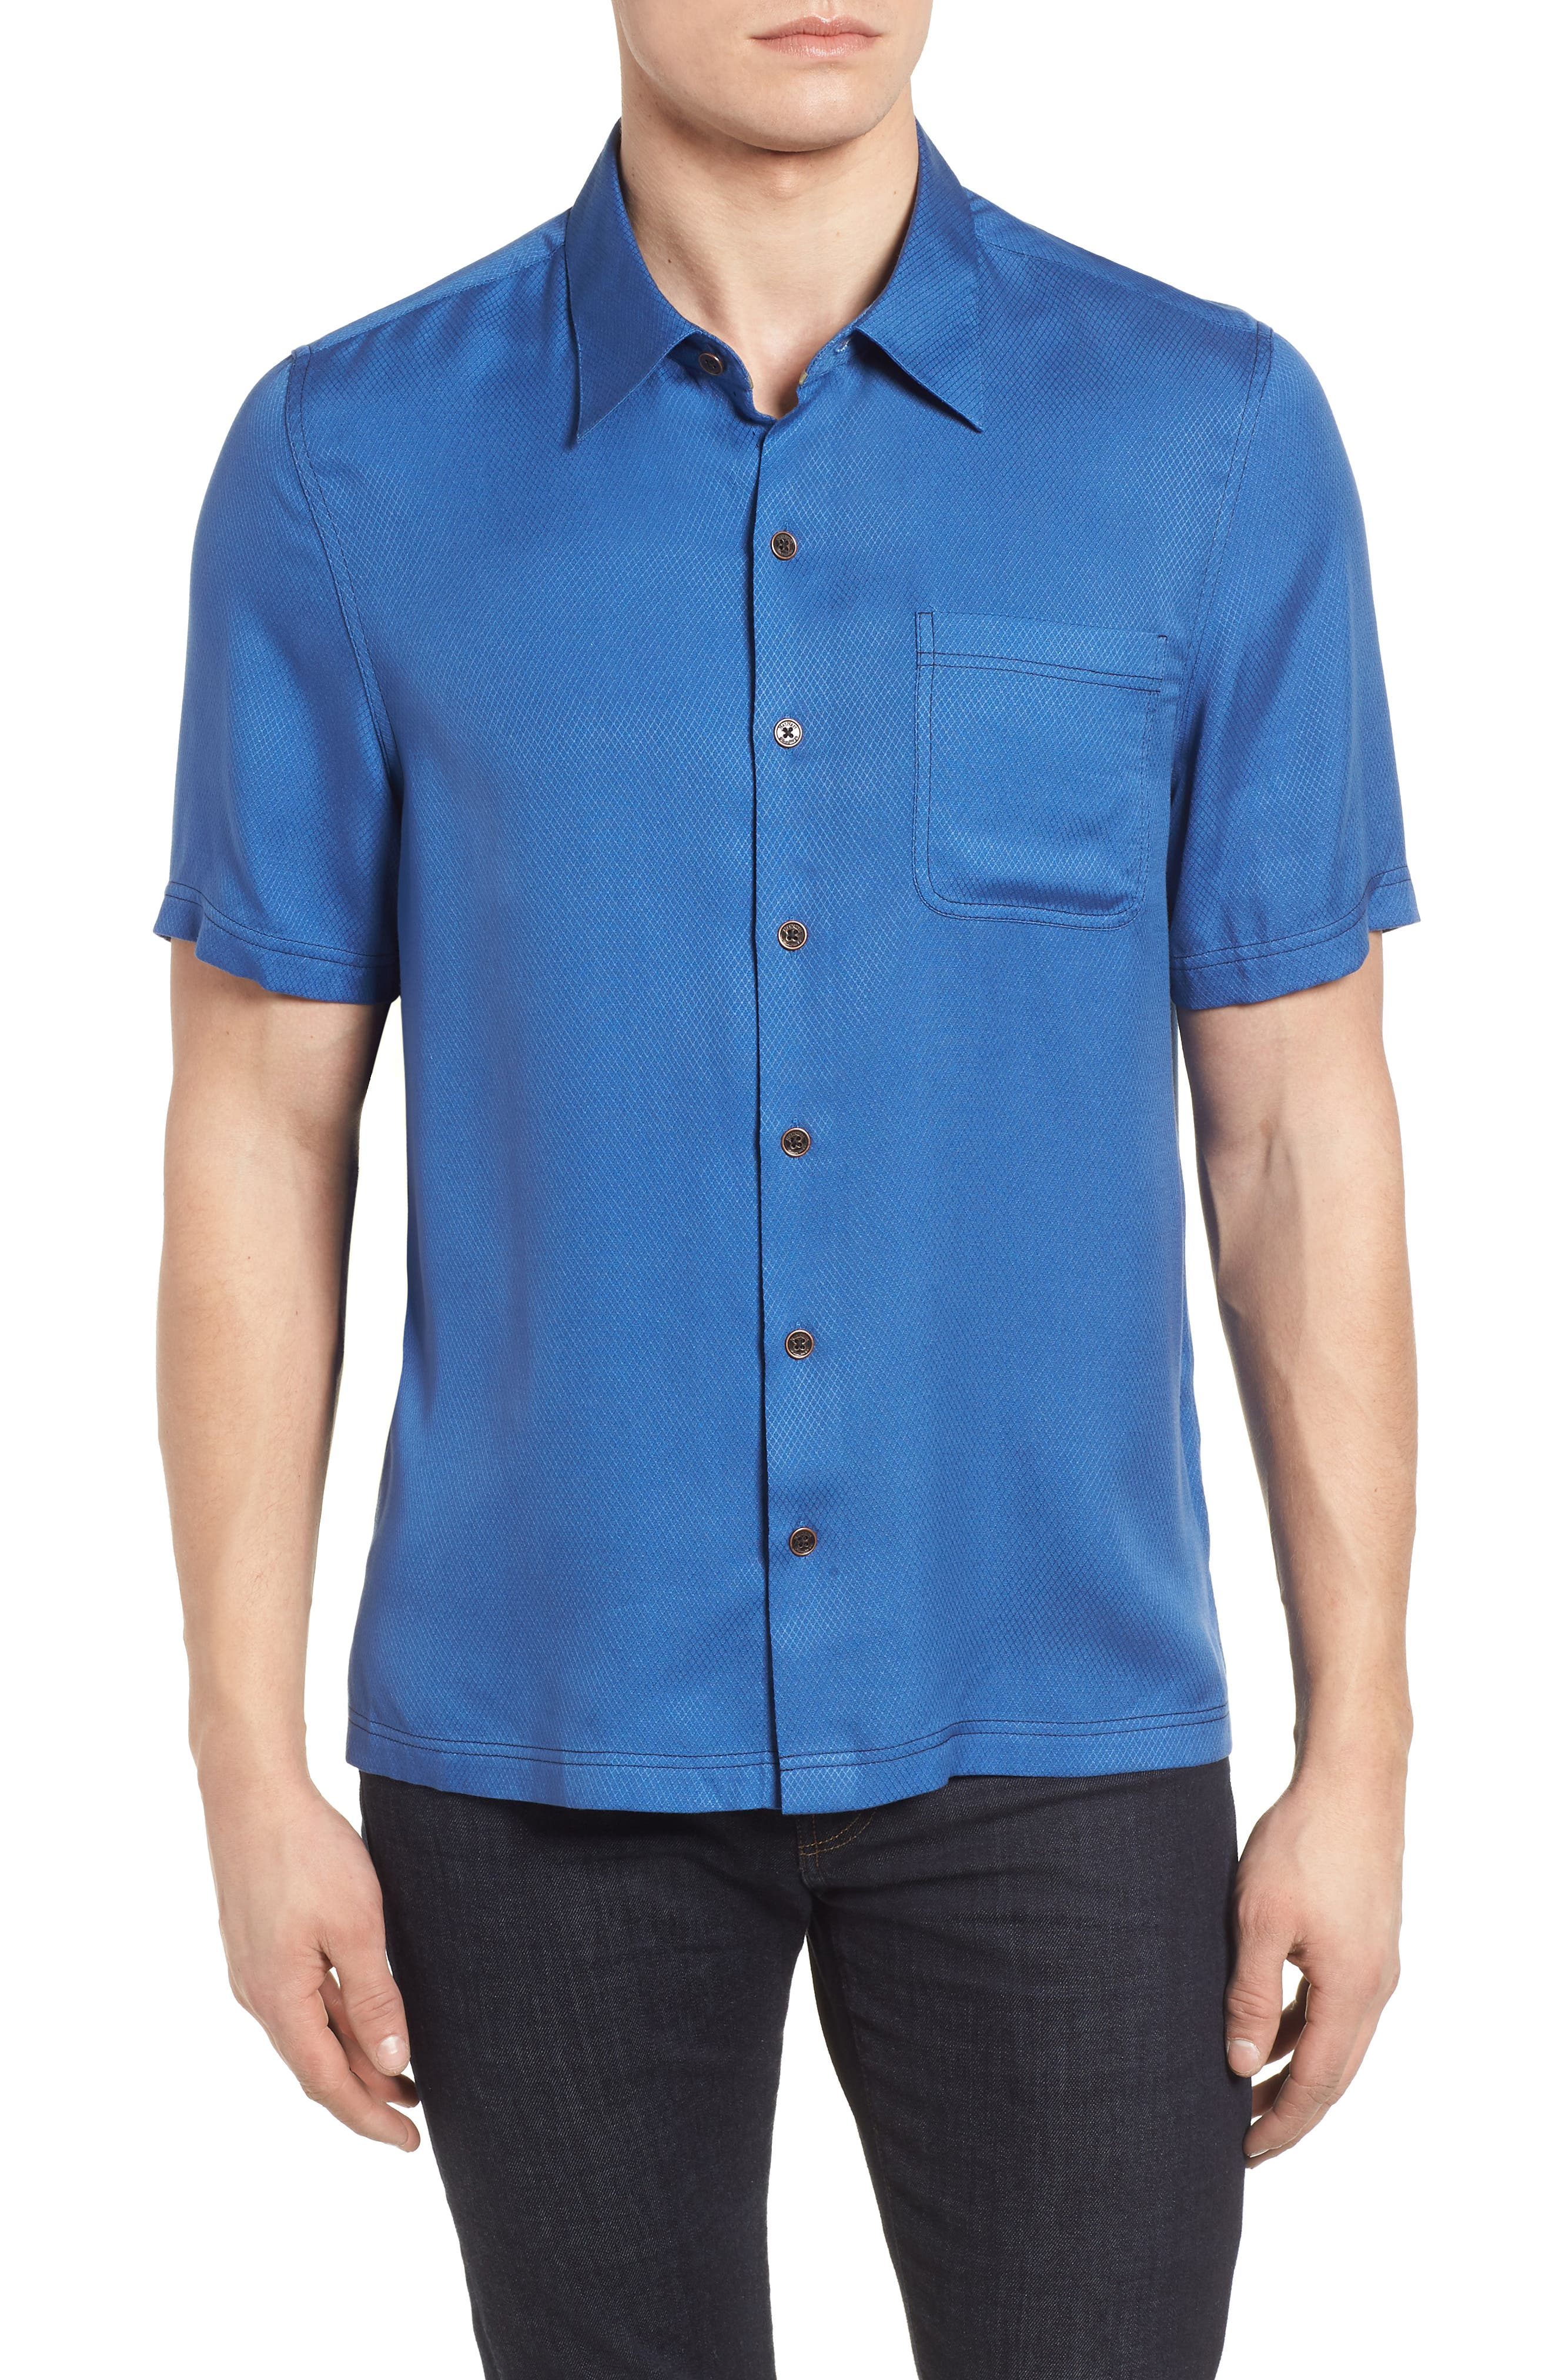 Main Image - Nat Nast 'Honeycomb' Regular Fit Short Sleeve Textured Sport Shirt